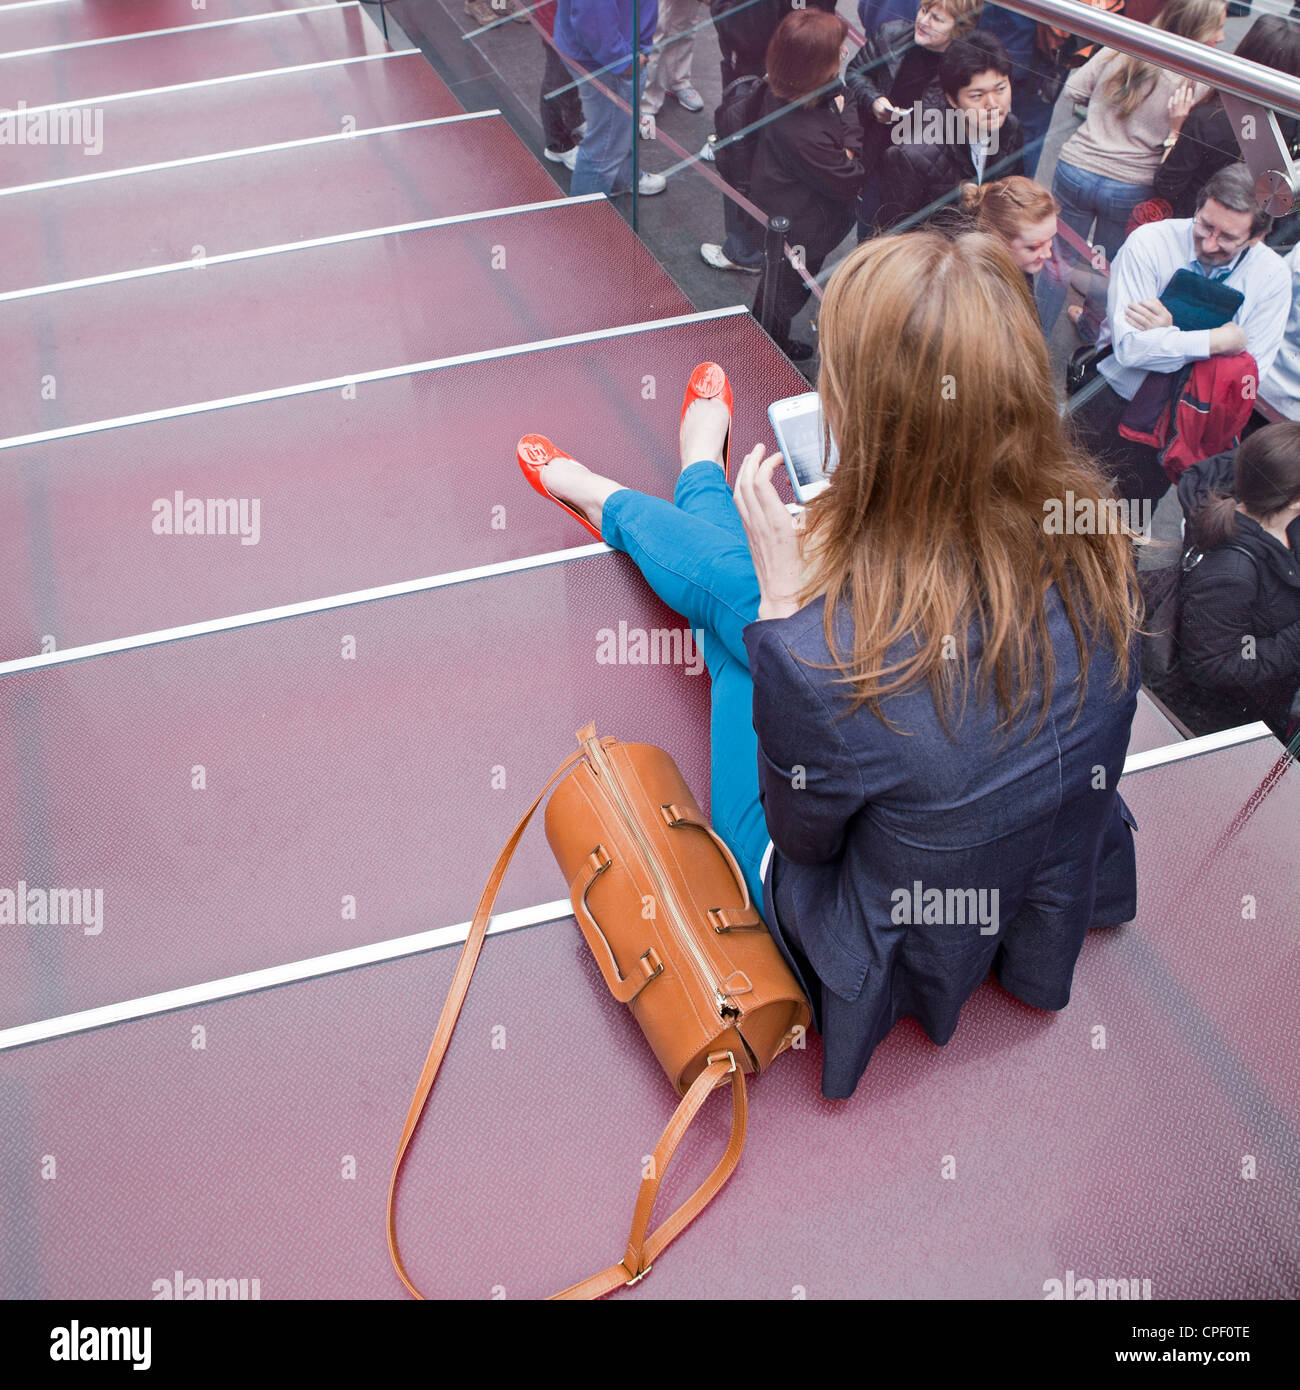 A woman spends a quiet moment with her phone before joining the crowds in Times Square in New York City. - Stock Image